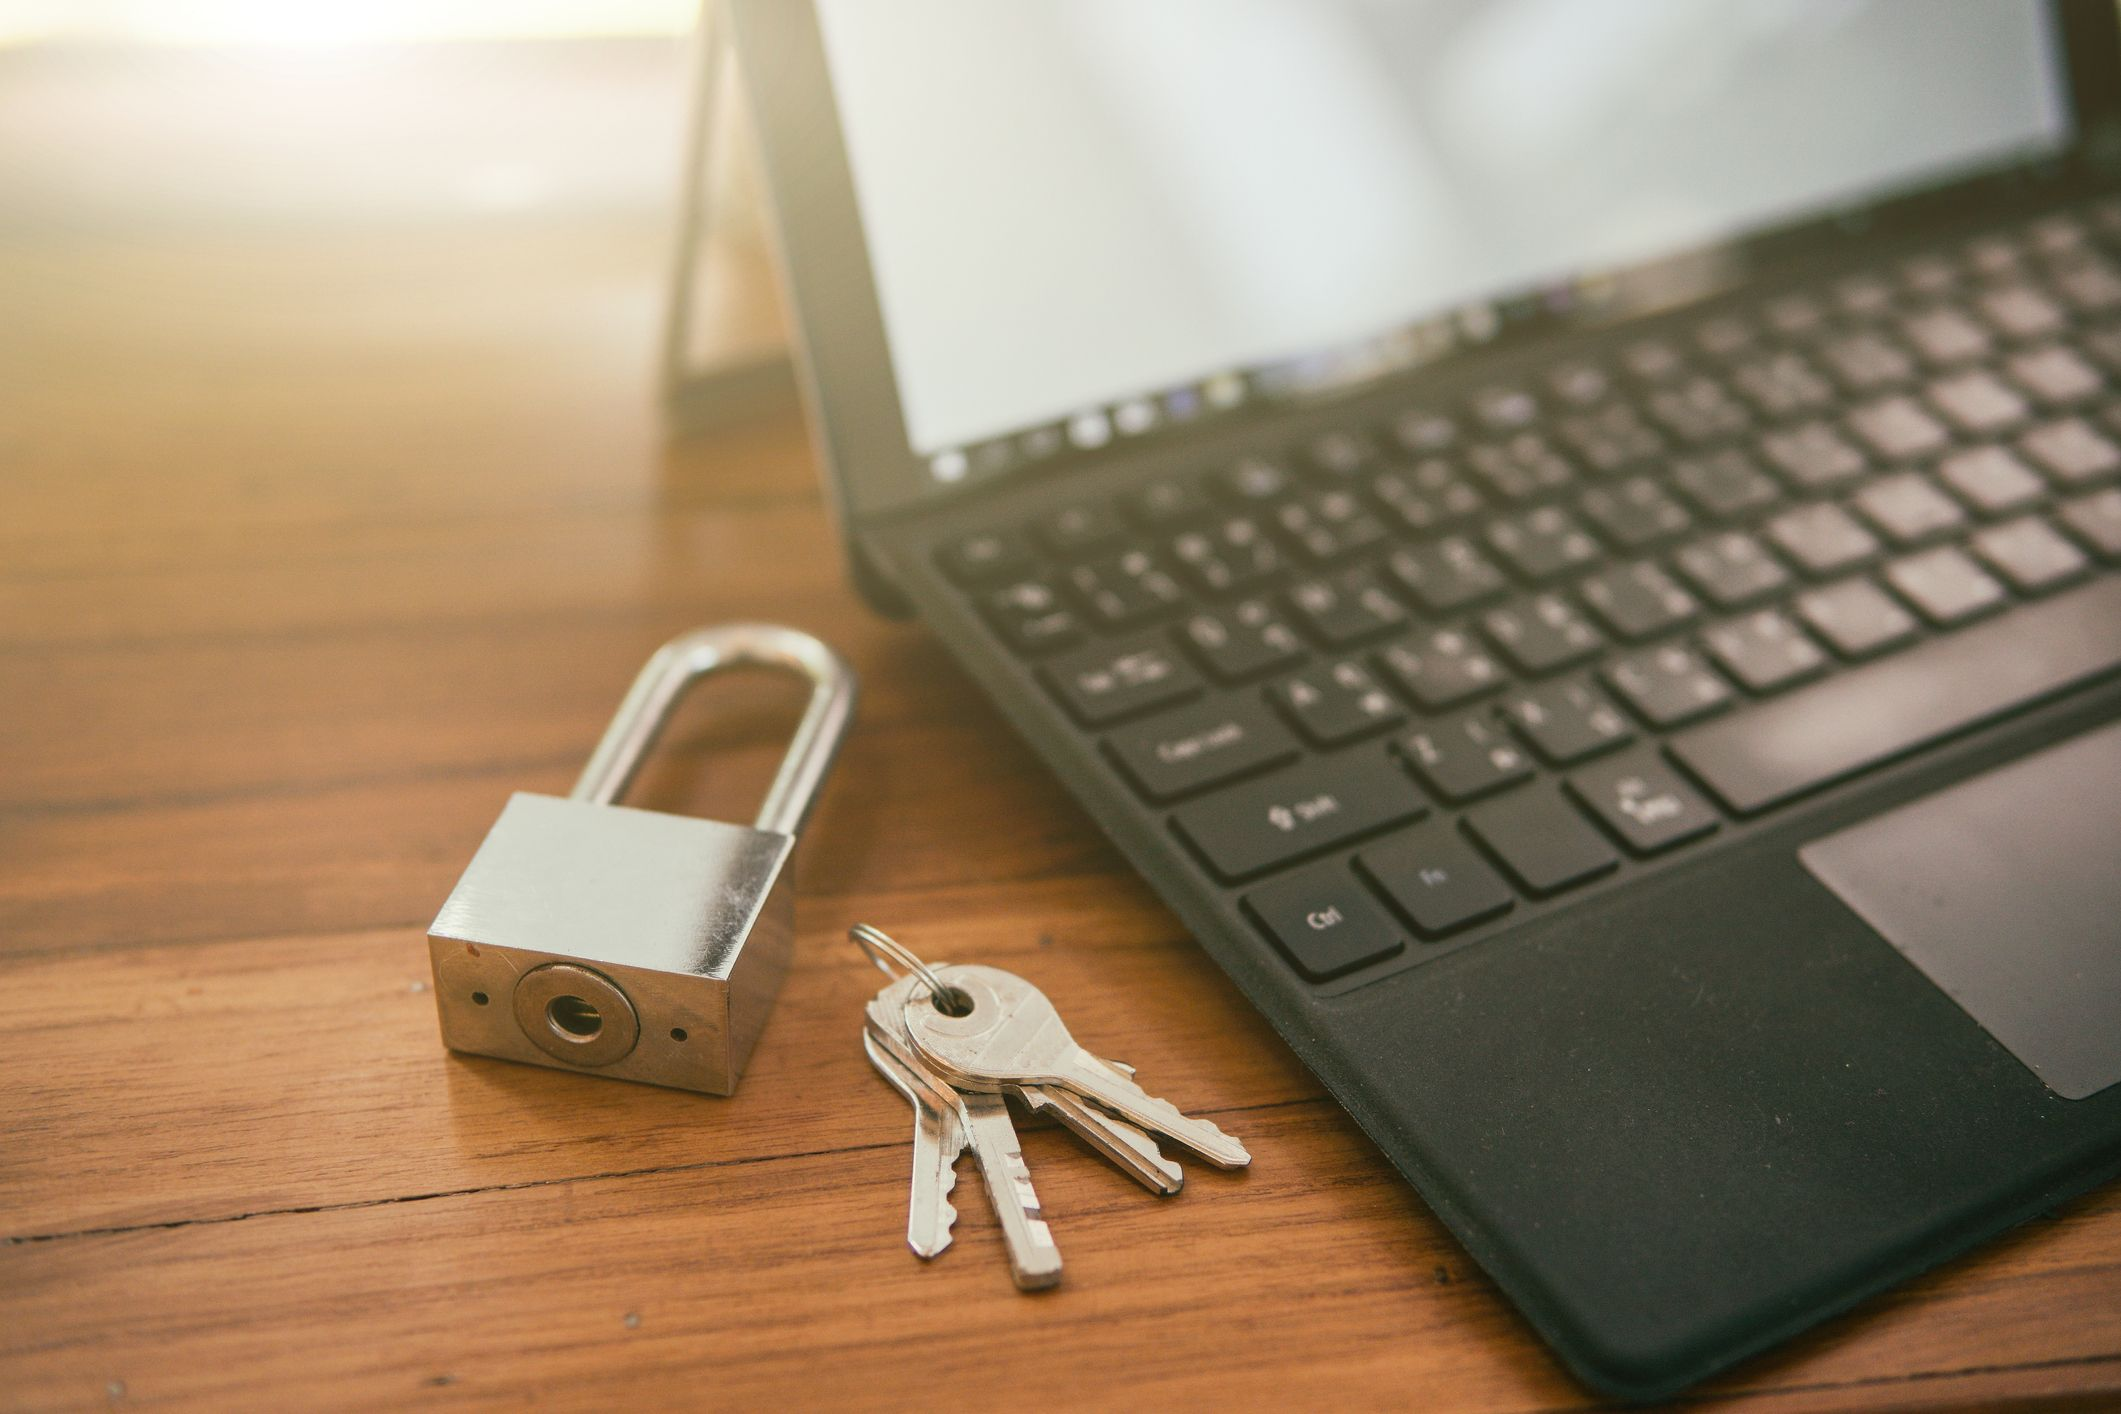 Here are the best ways to secure important financial documents